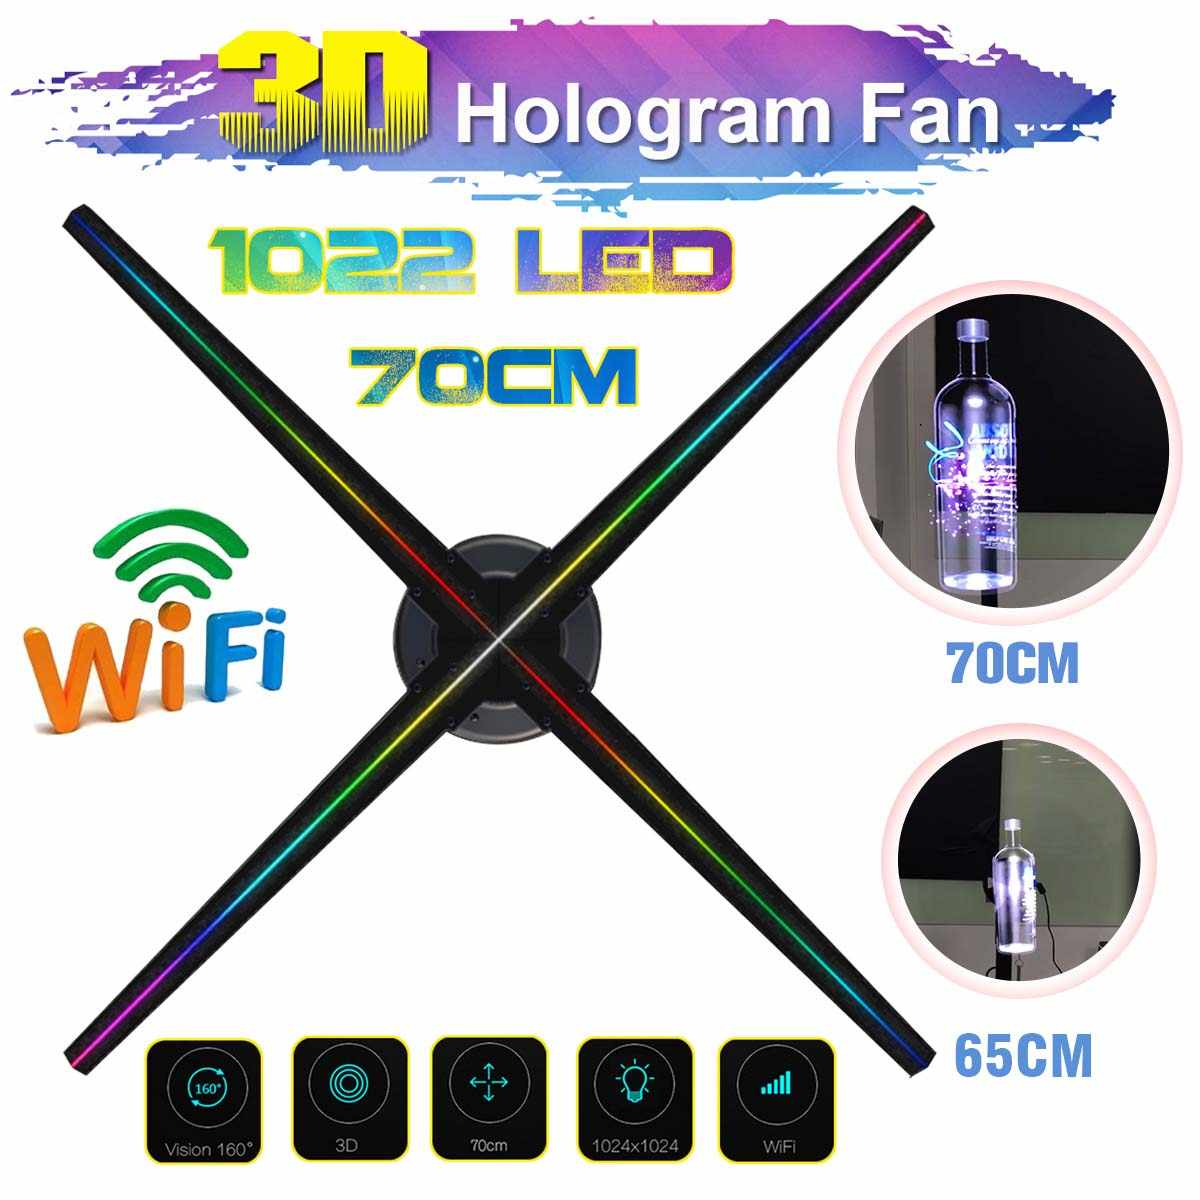 Upgraded 3D Holographic Projector Hologram Player LED Display Fan Advertising Light Imaging Lamp APP Control Remote Hologram